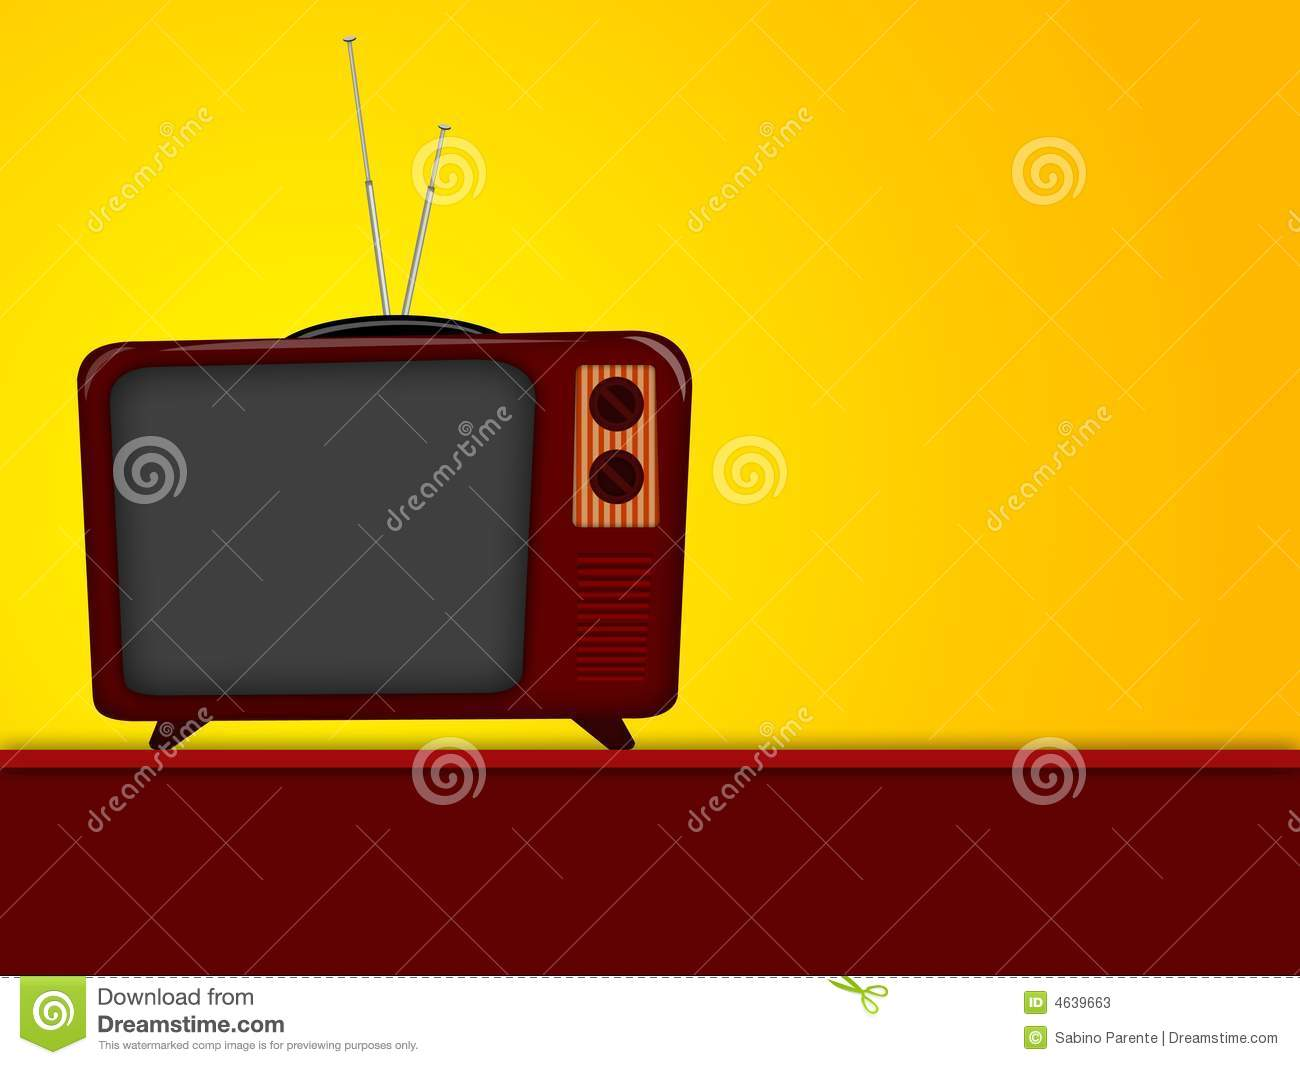 Cartoon of old television